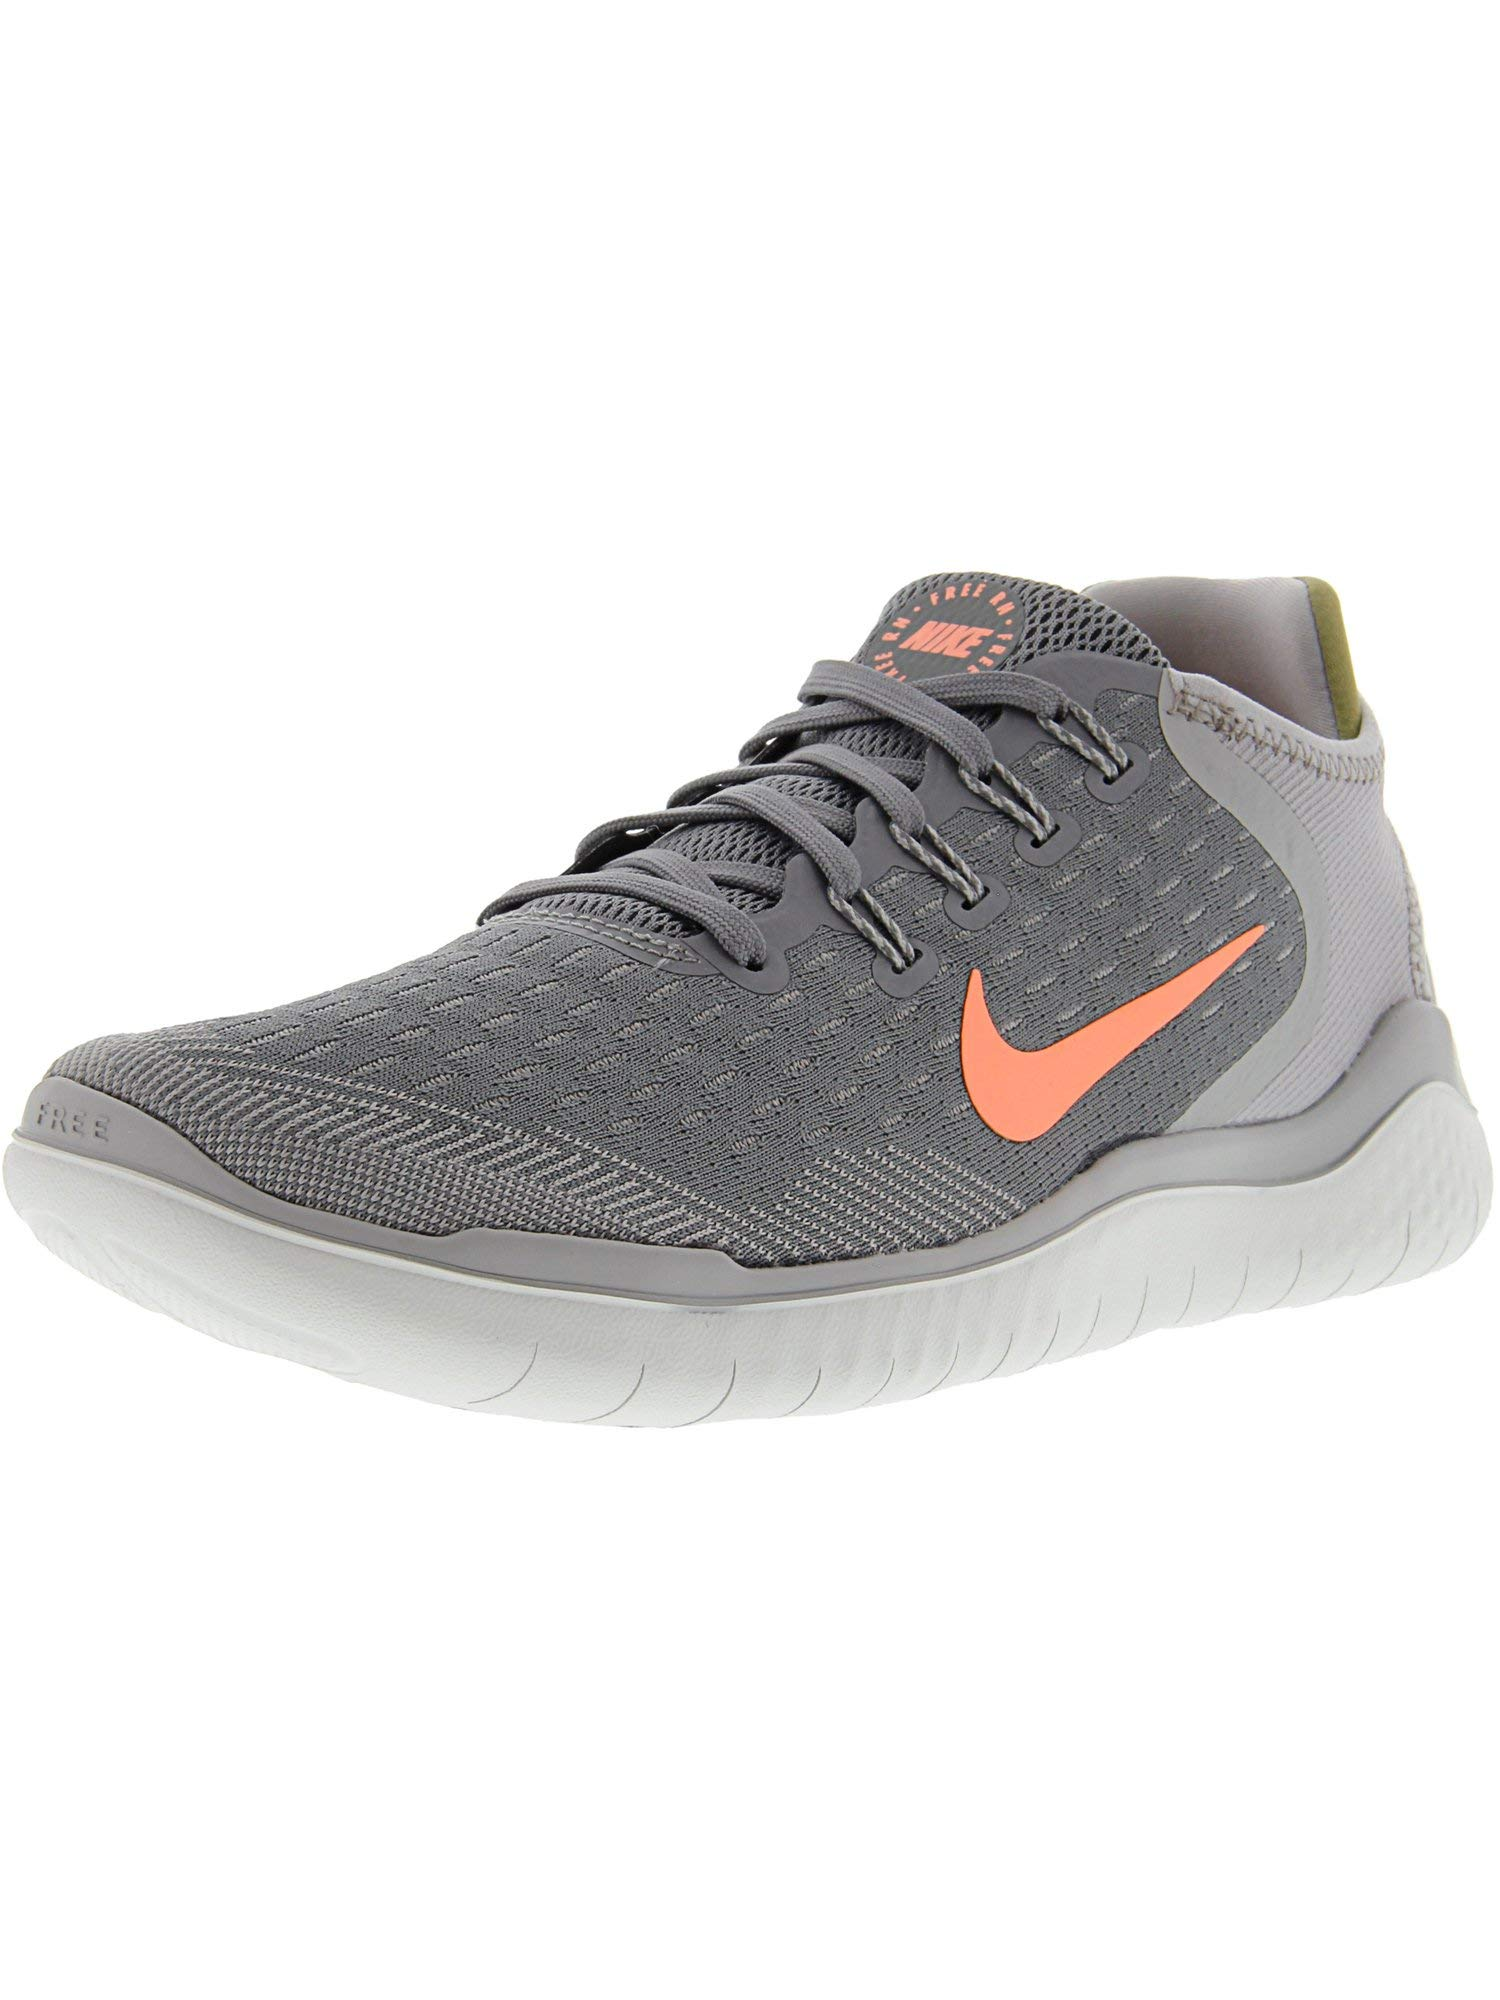 7b7d8ea231950 Galleon - Nike Women s Free RN 2018 Running Shoe (9 B(M) US ...